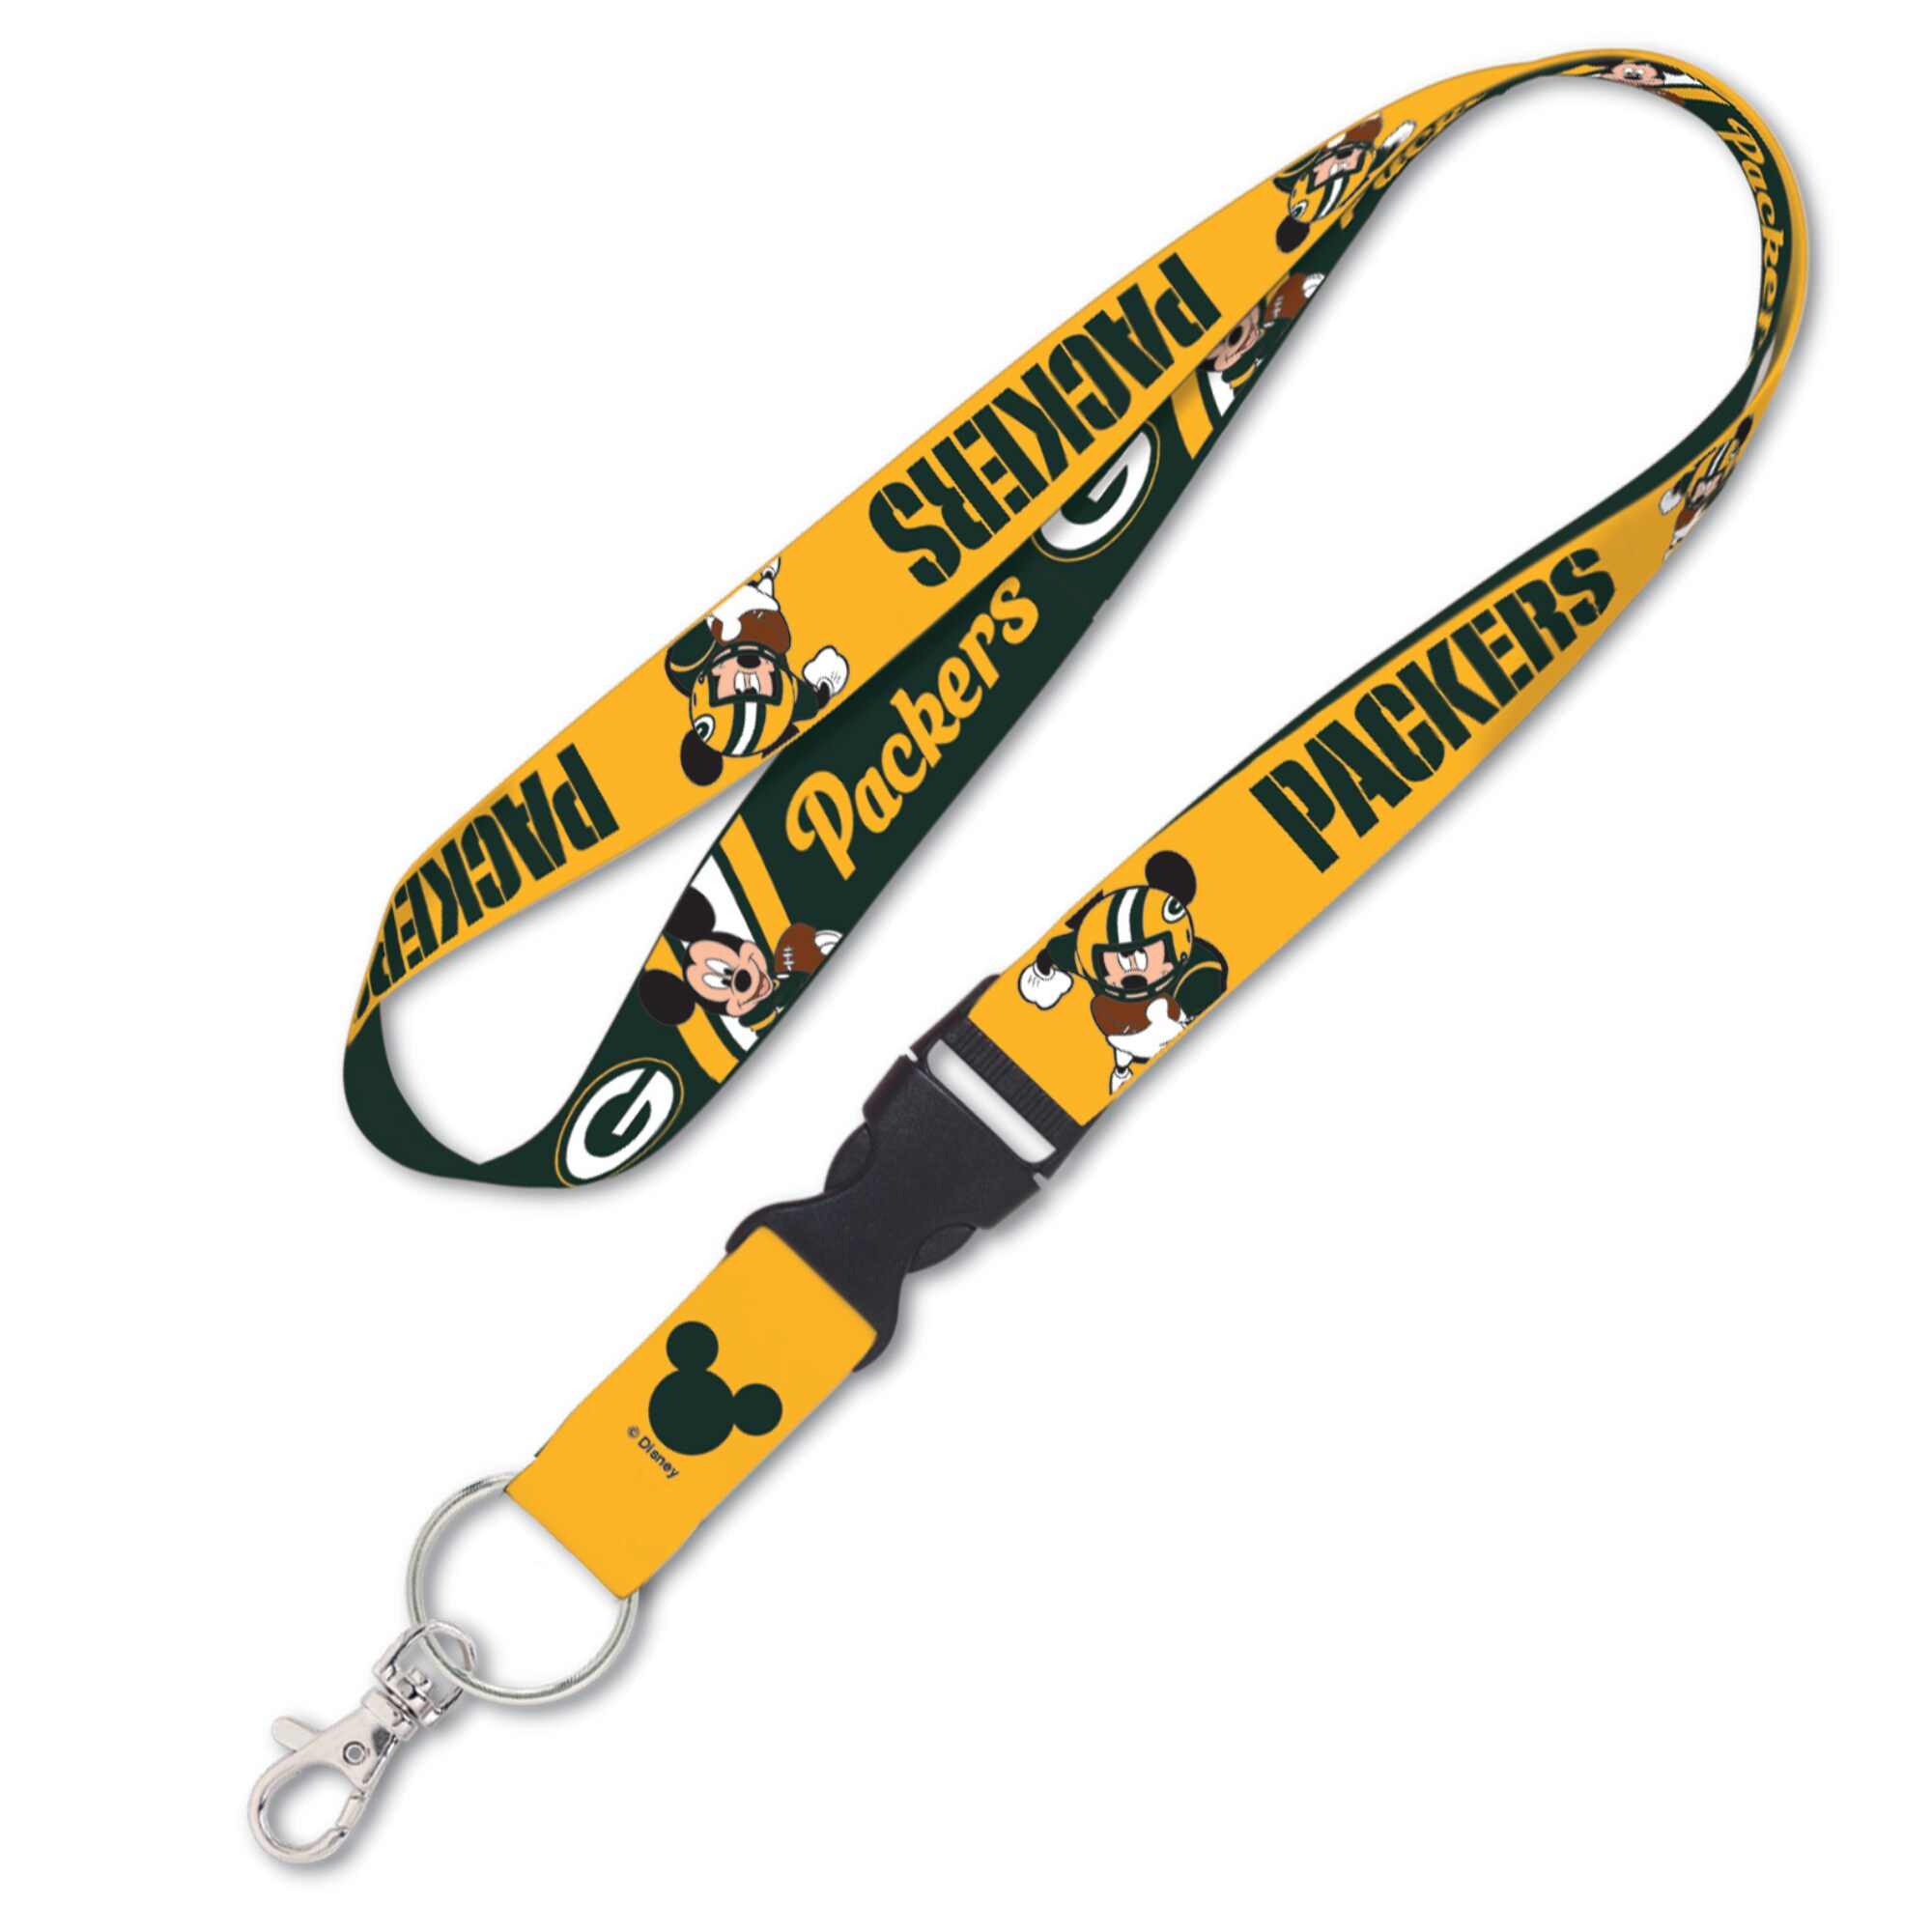 Green Bay Packers WinCraft Disney Lanyard With Detachable Buckle